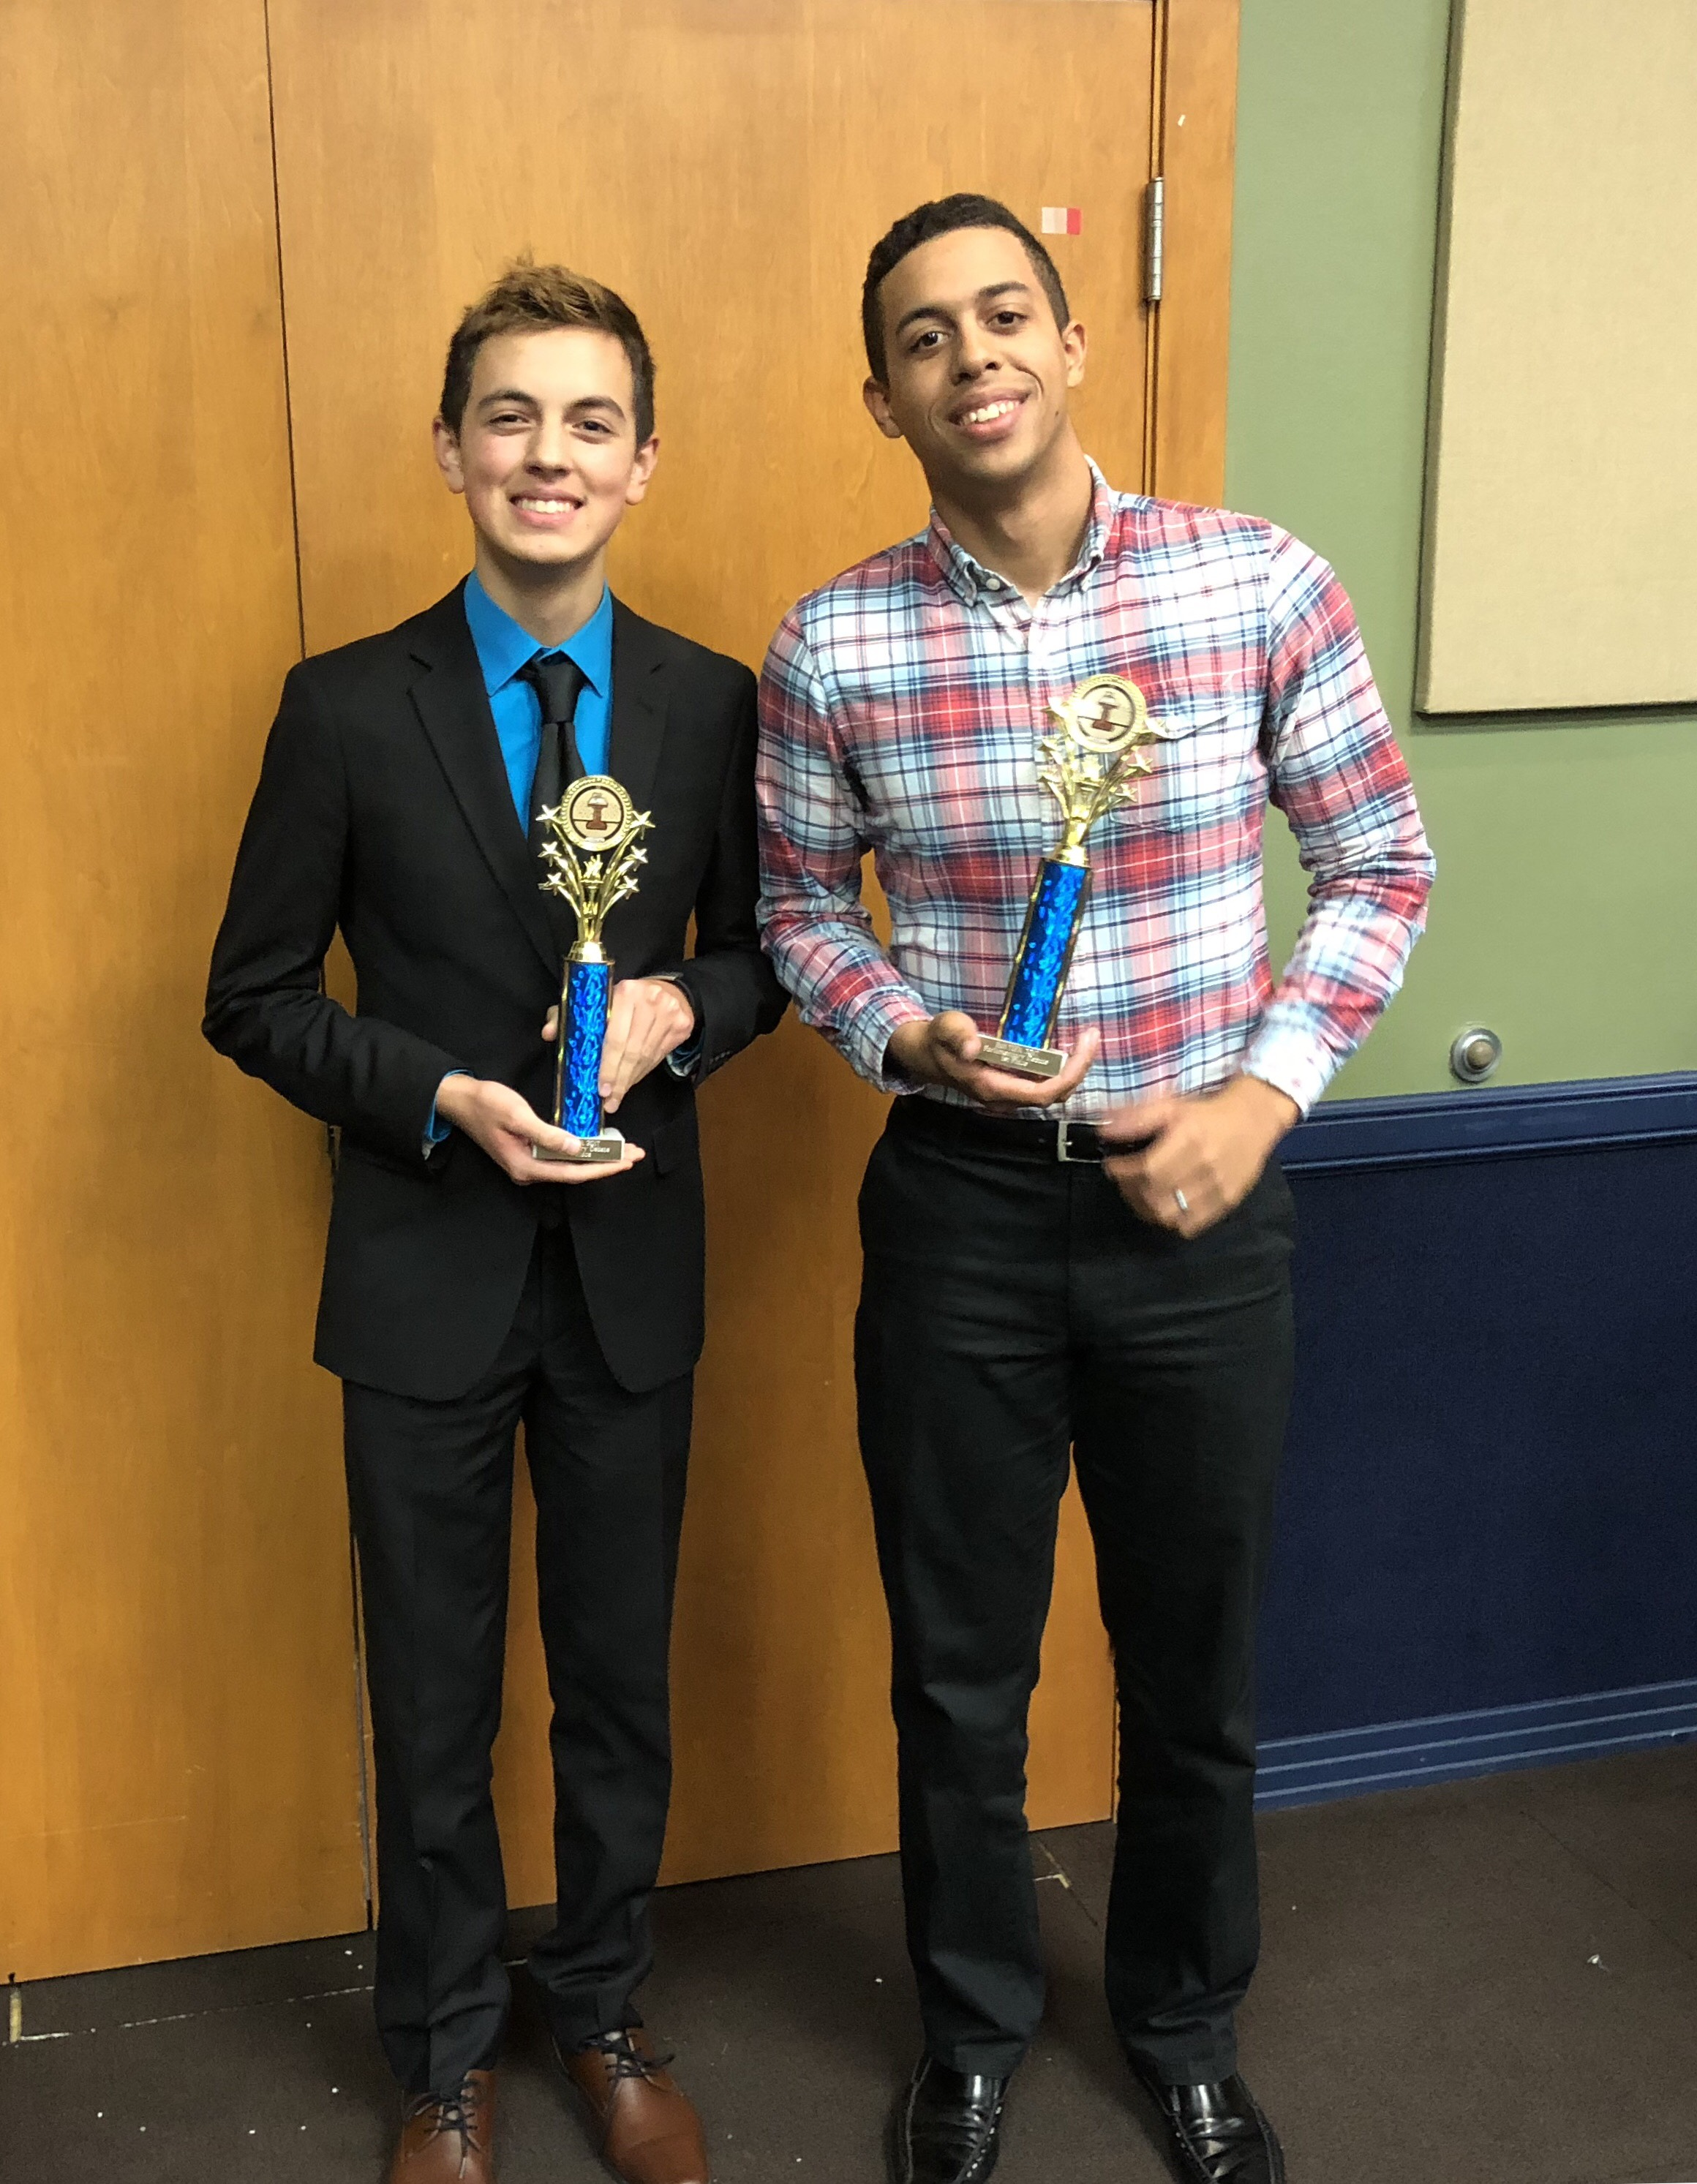 Matthew Hernandez (l) and Abron Hestor qualified for the 2018 National Parliamentary Tournament of Excellence, which will be held March 28-31 at Lewis and Clark College in Portland, Oregon.